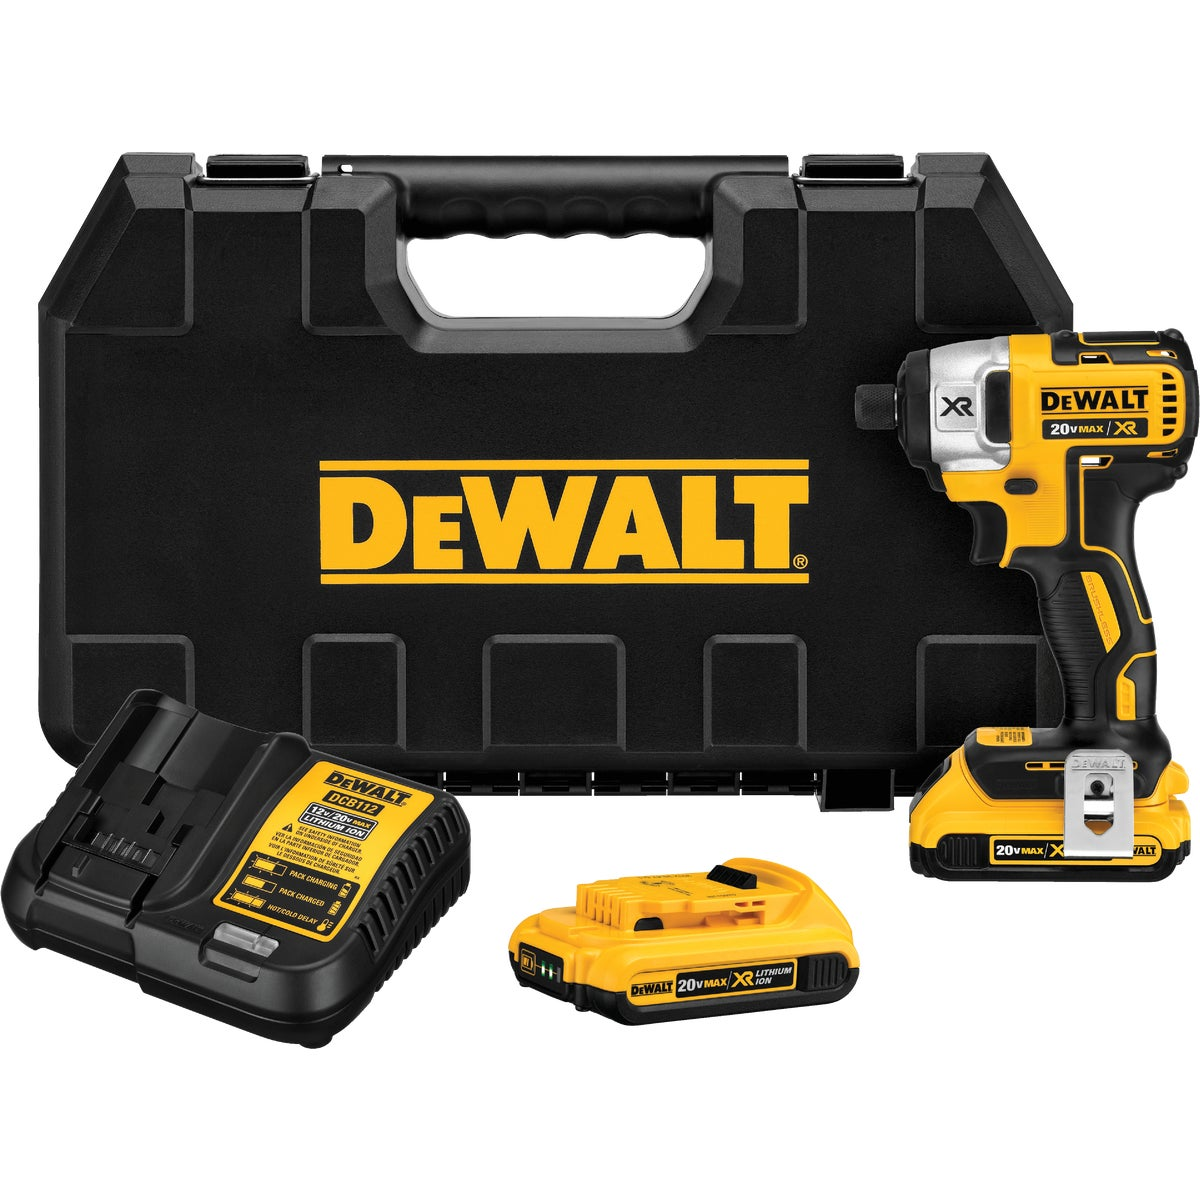 20V MAX BRUSHLESS IMPACT - DCF886D2 by DeWalt